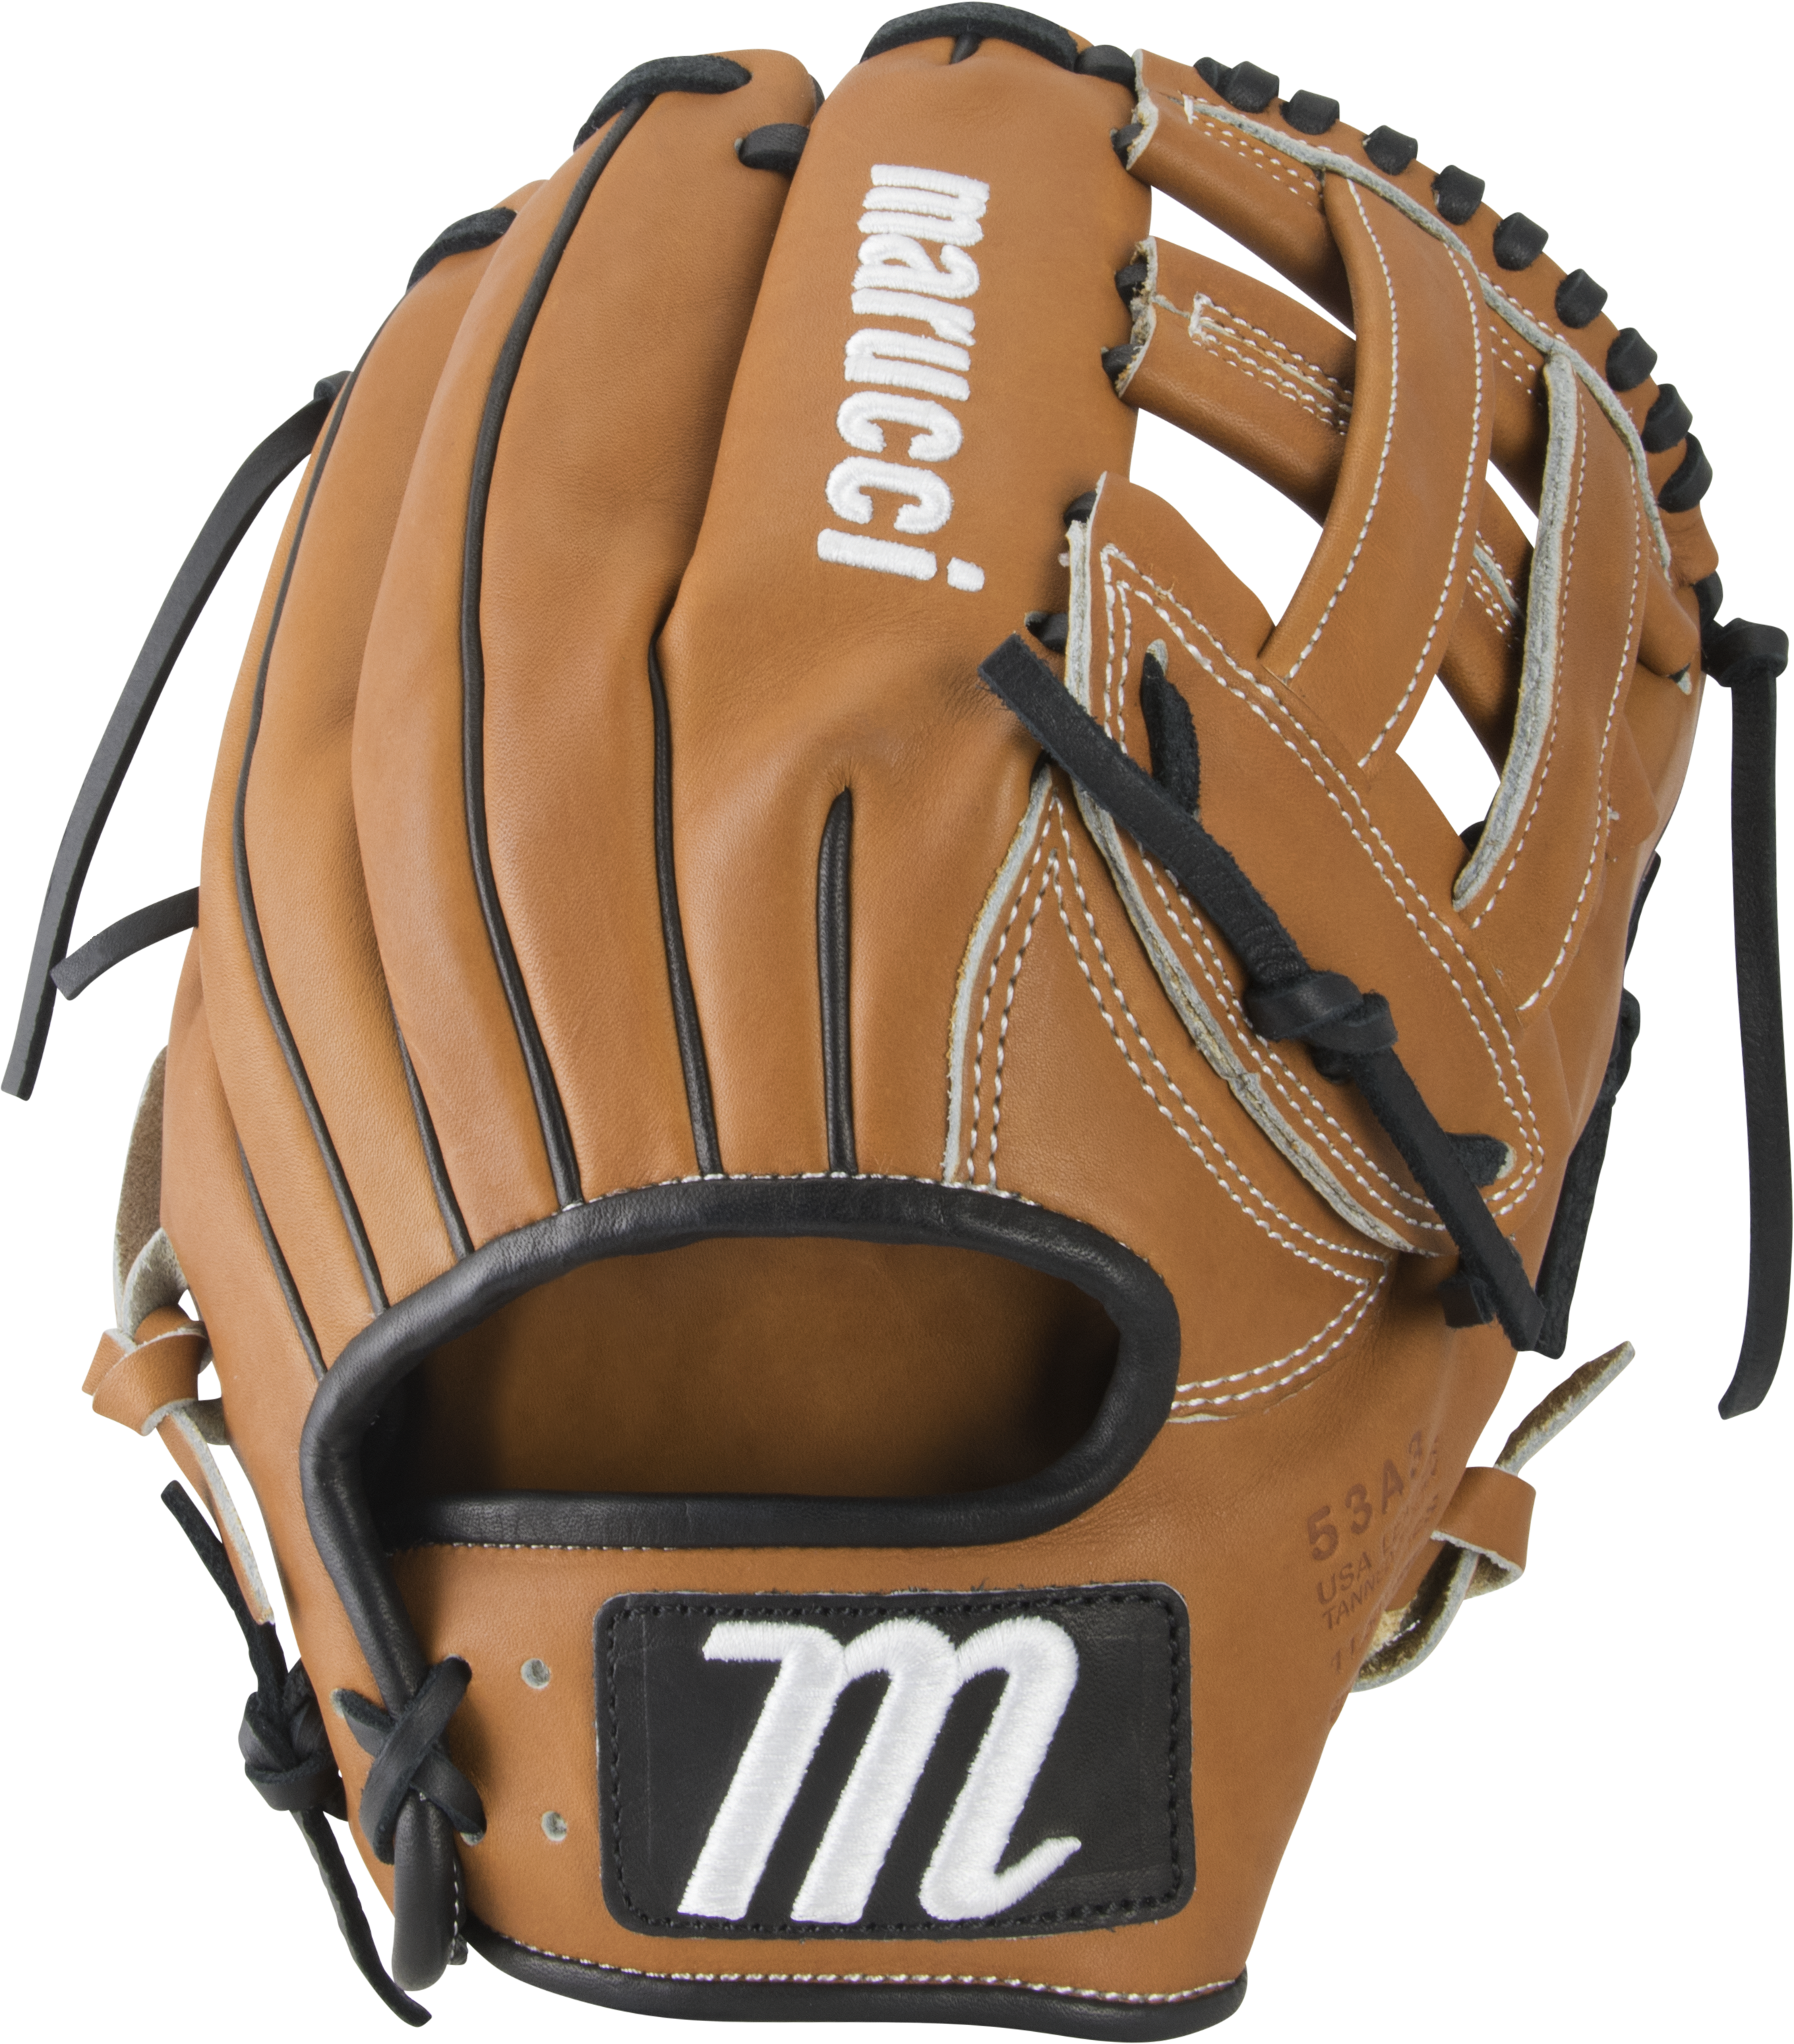 marucci-capitol-11-5-baseball-glove-53a3-h-web-right-hand-throw MFGCP53A3-TFBK-RightHandThrow   849817099209 Premium Japanese-tanned USA Kip leather combines ideal stiffness with lightweight feel